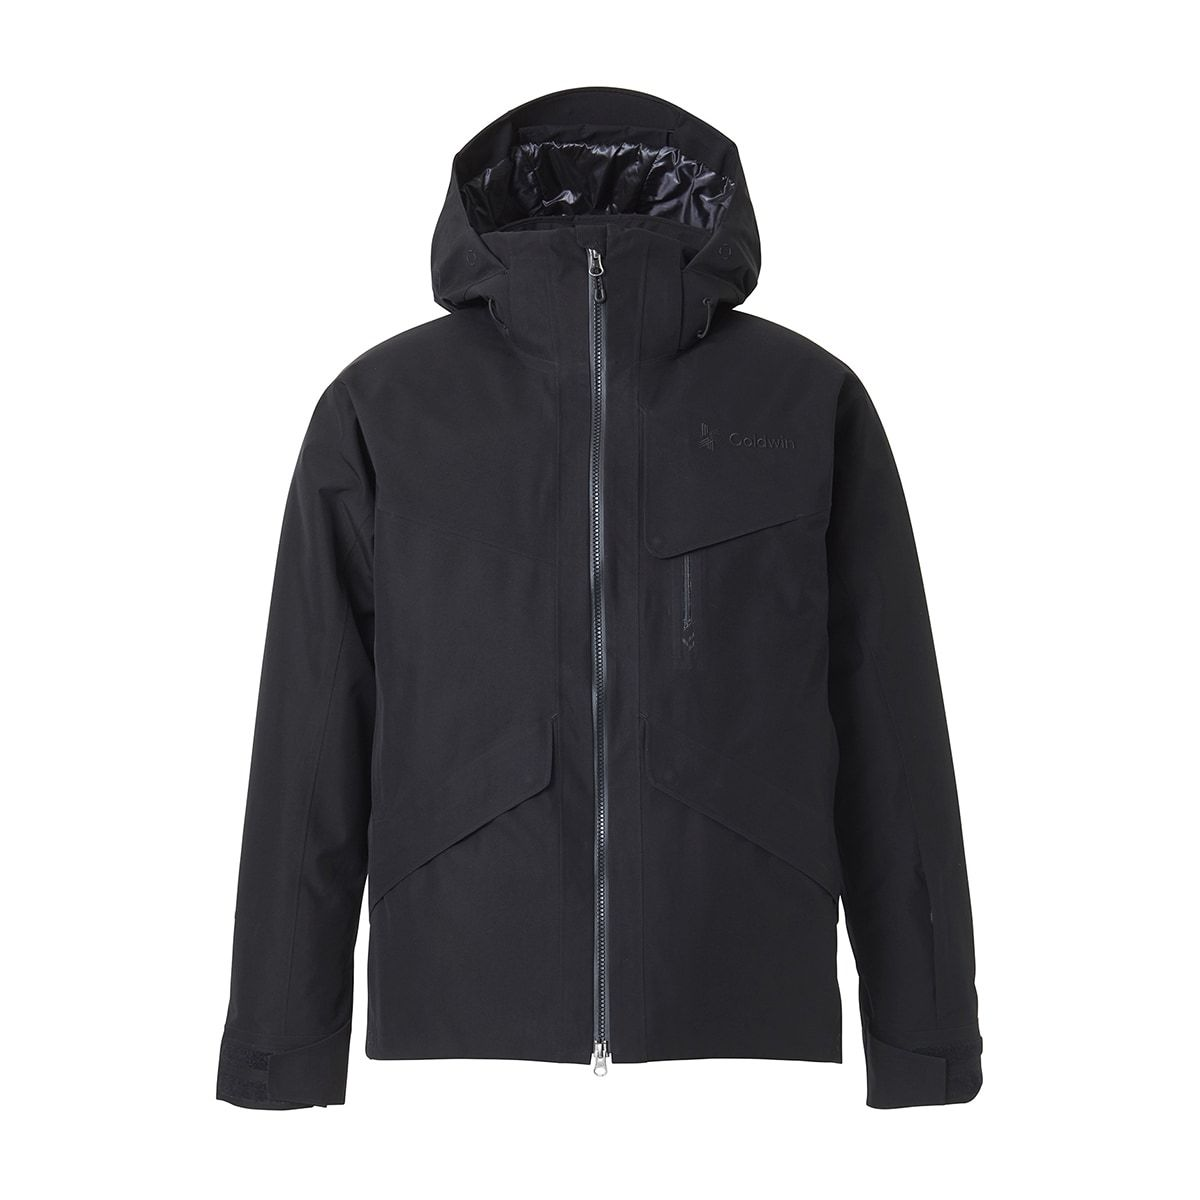 COLOR: BK